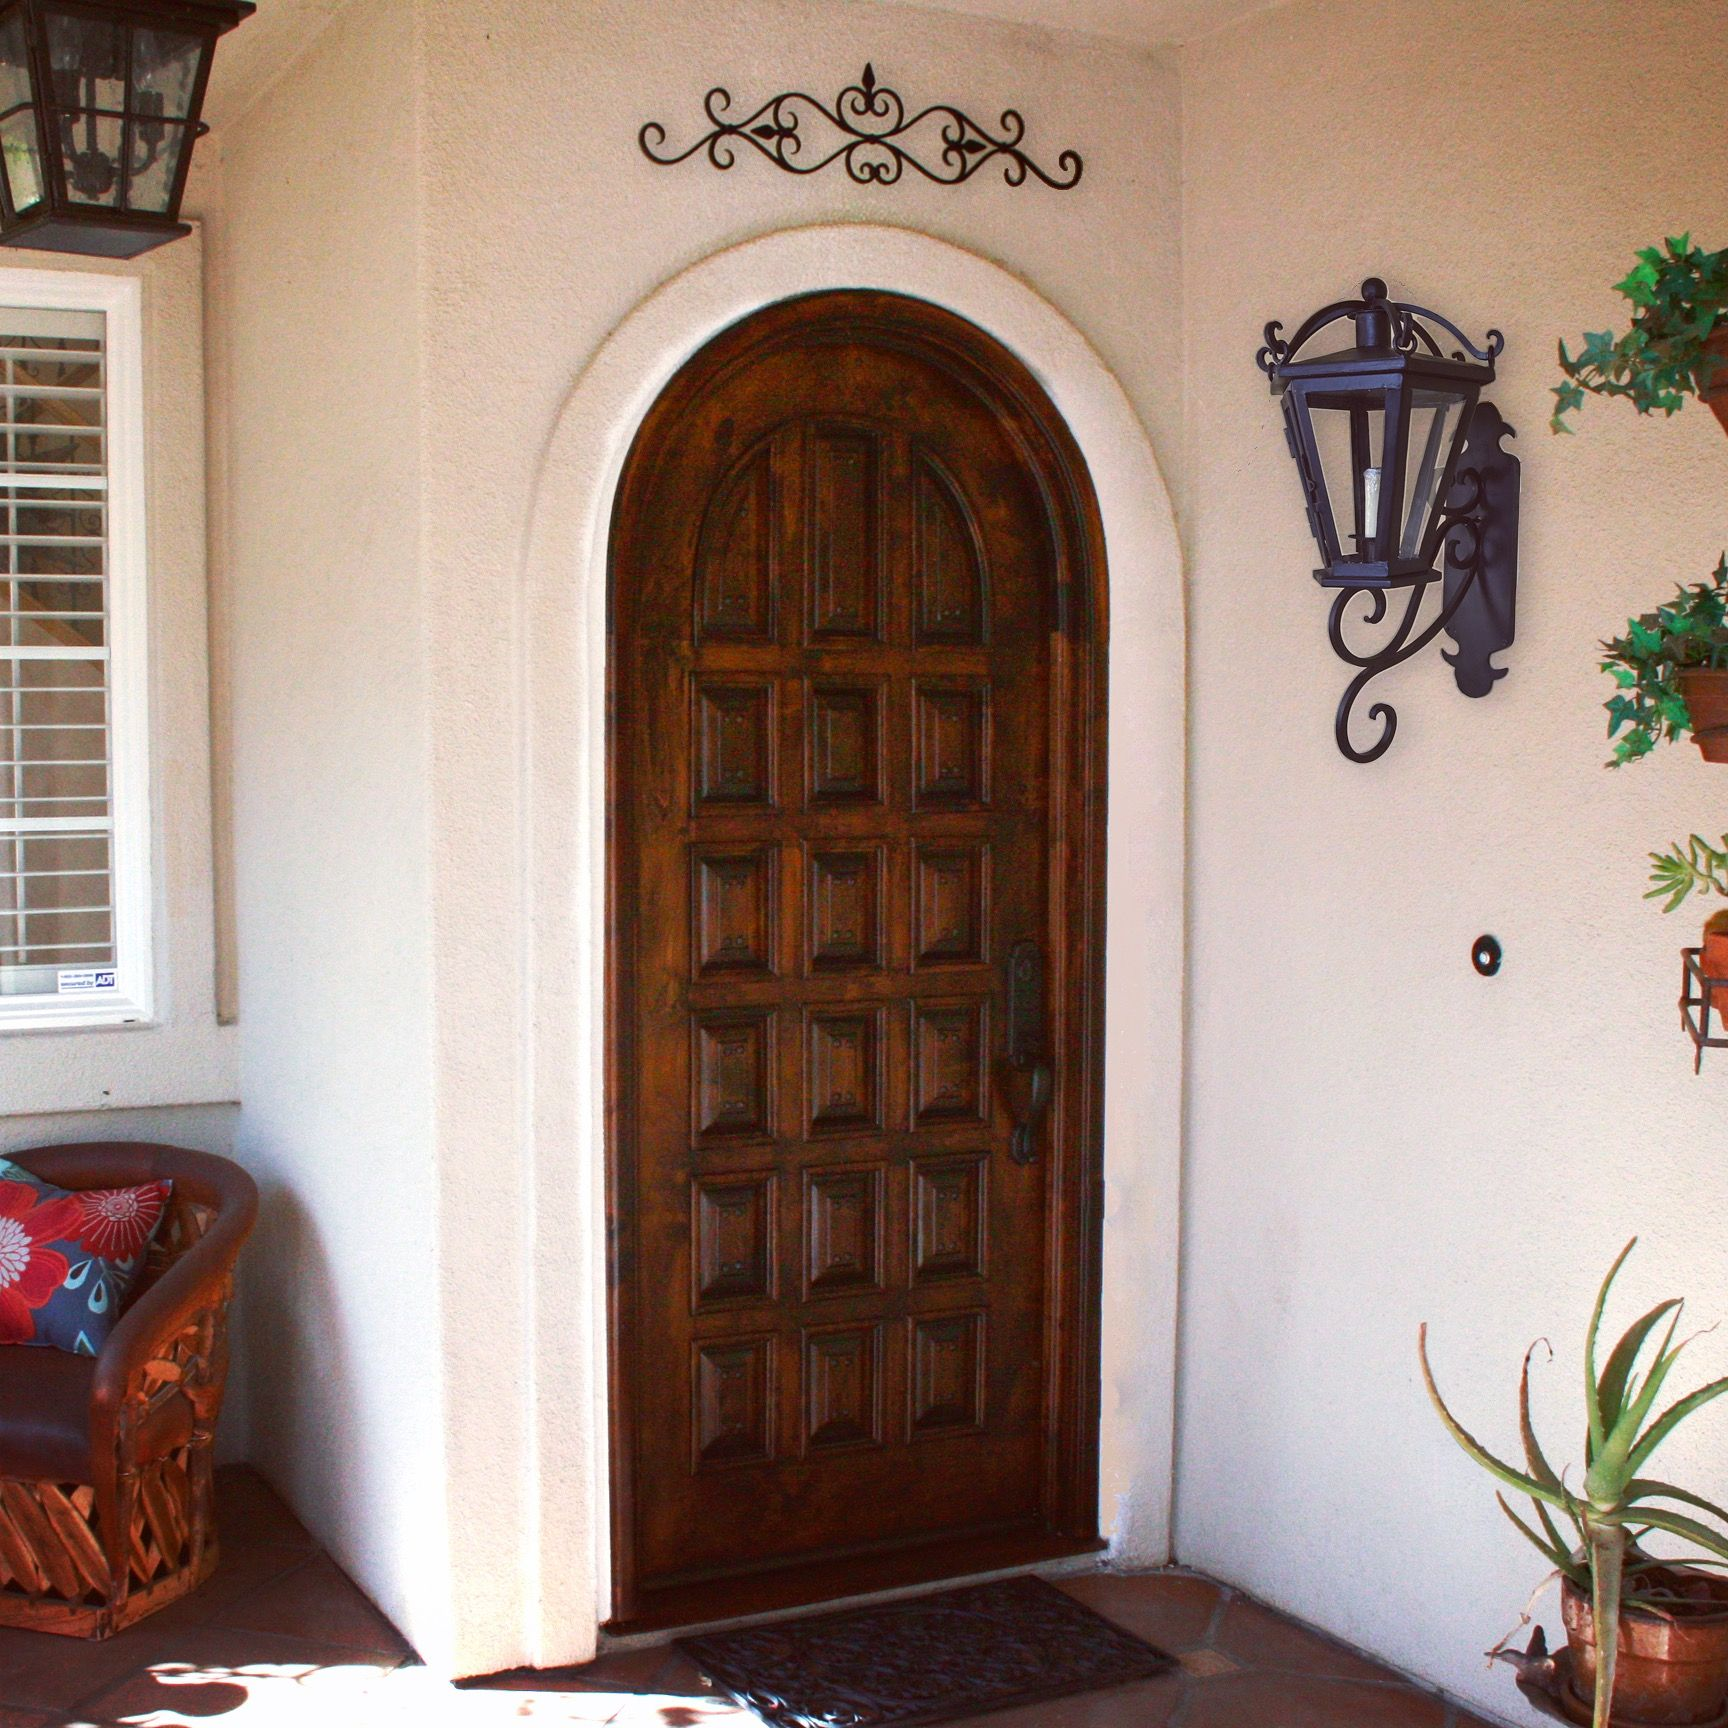 A Classic Spanish Entry Door Stands Out In This Suburban Southern